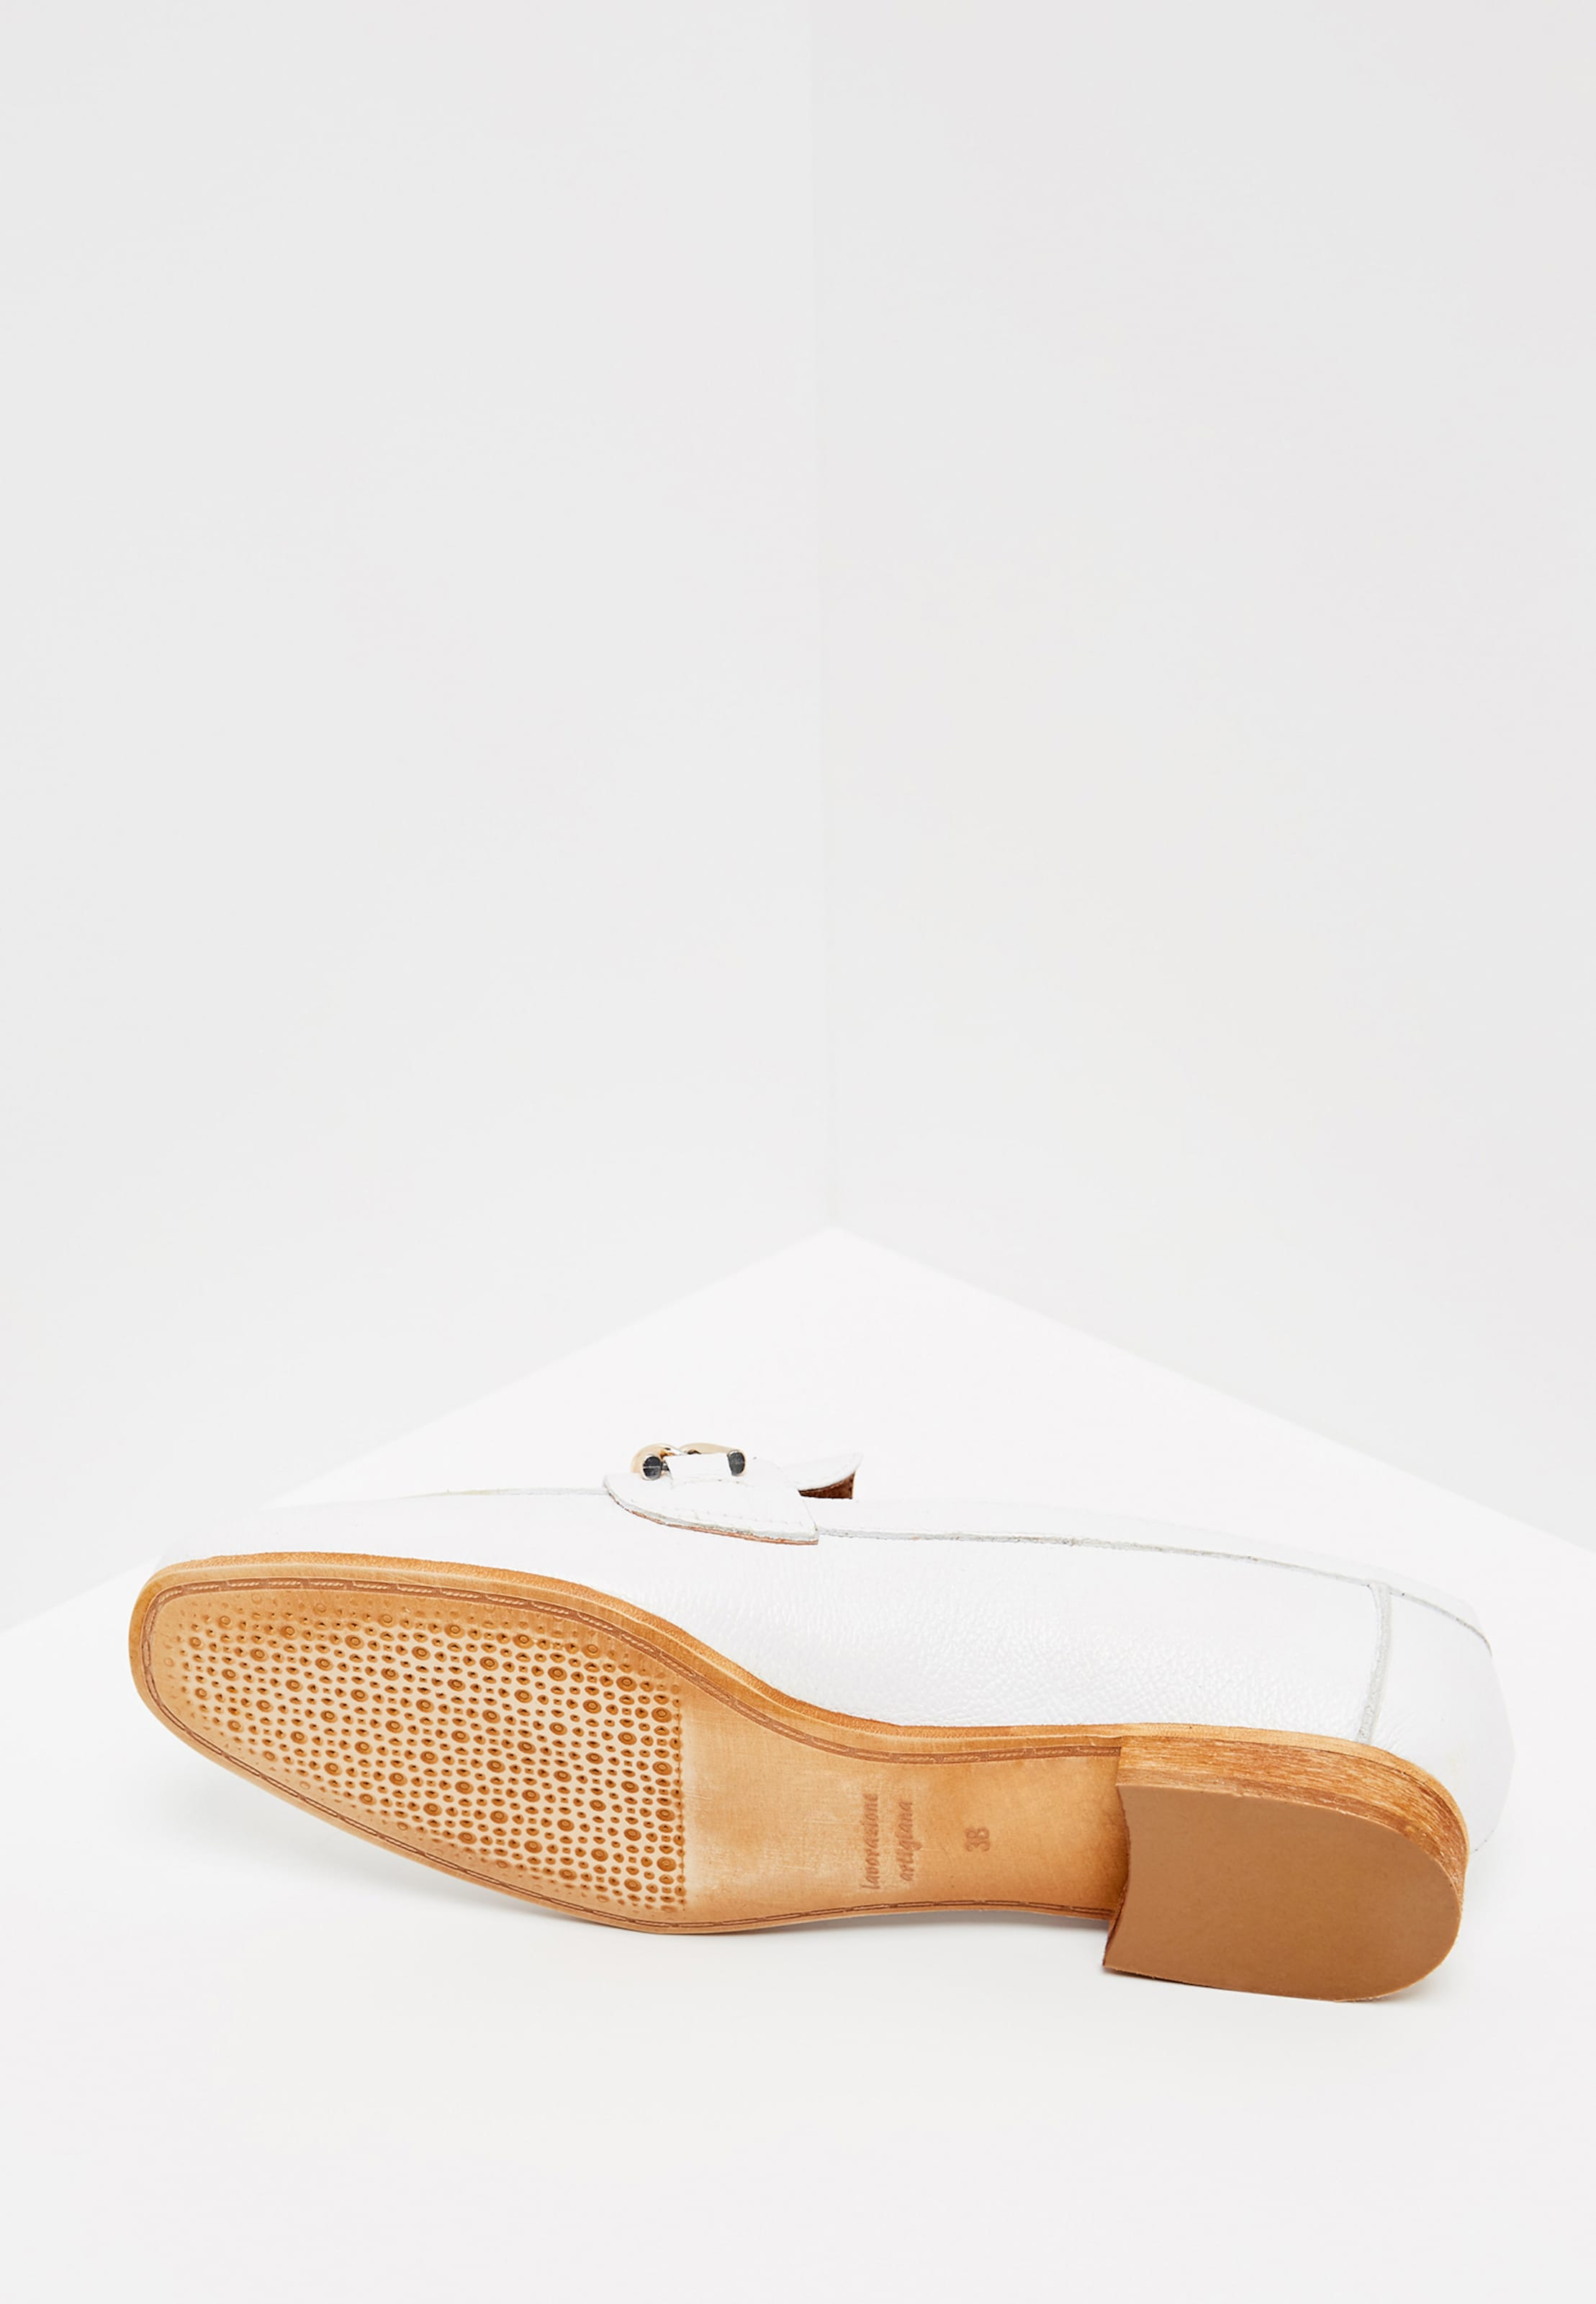 Weiß Loafer In Risa Risa Loafer In Loafer Risa Weiß dBxeCo